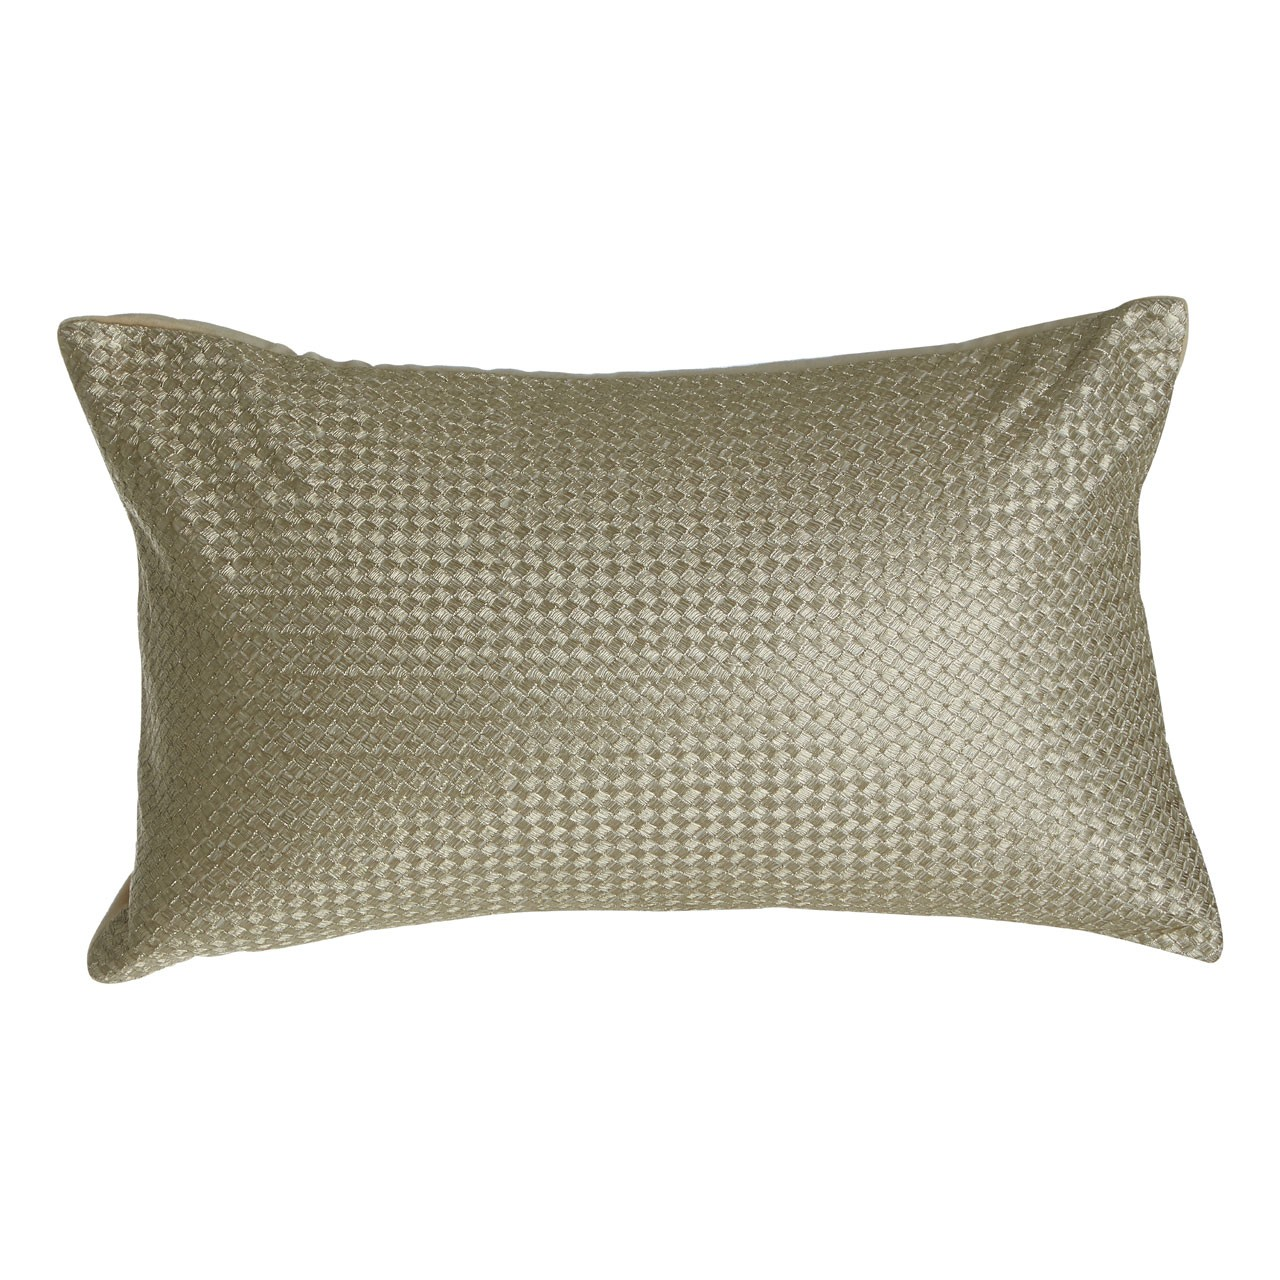 Prime Furnishing Kensington Townhouse Cushion, Metallic Waffle